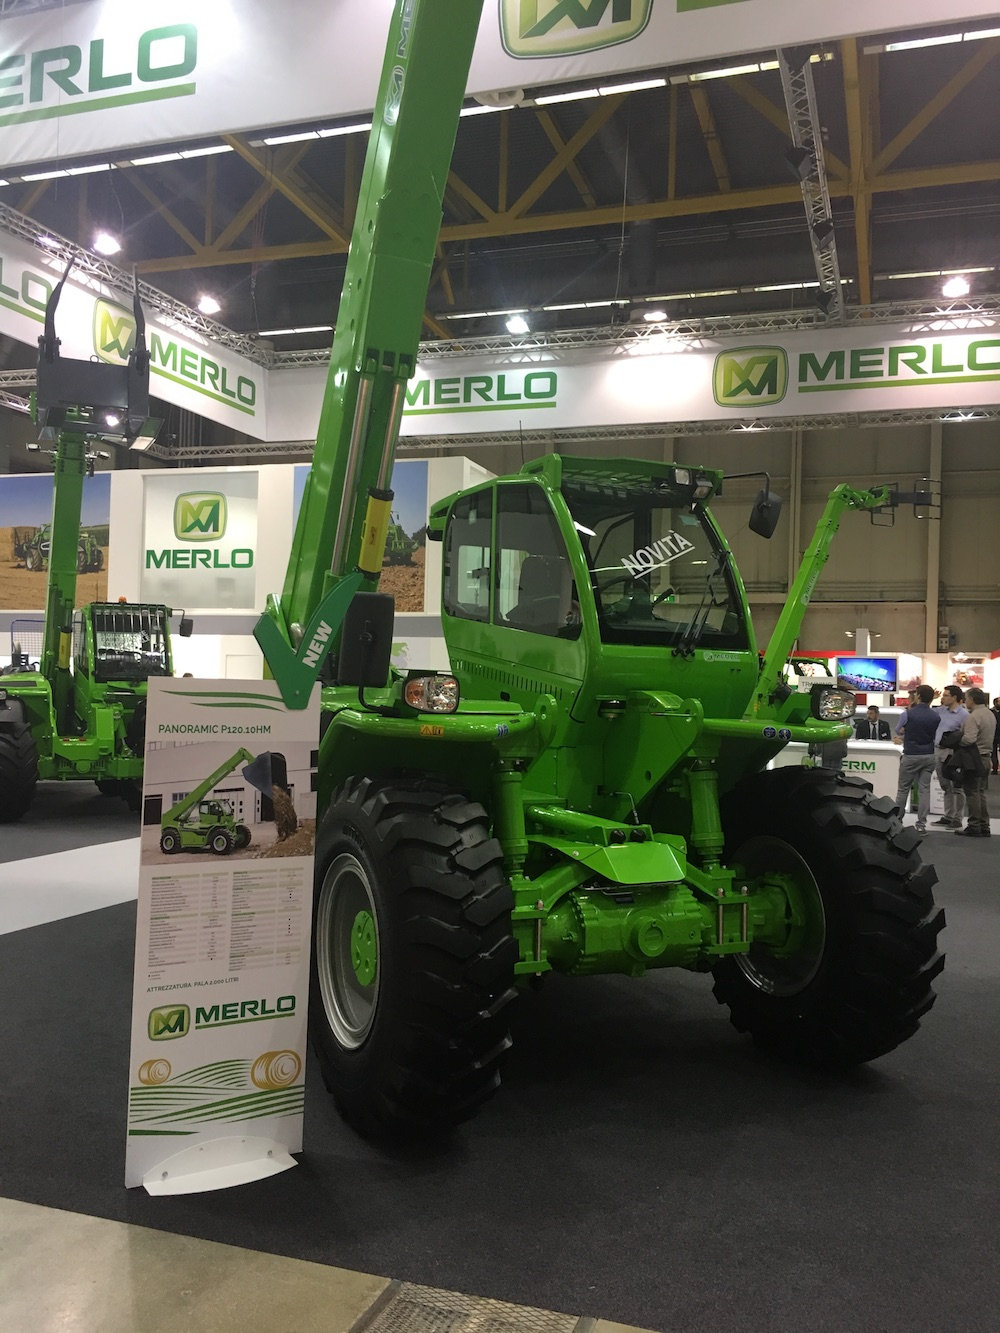 Merlo Panoramic P120.10HM